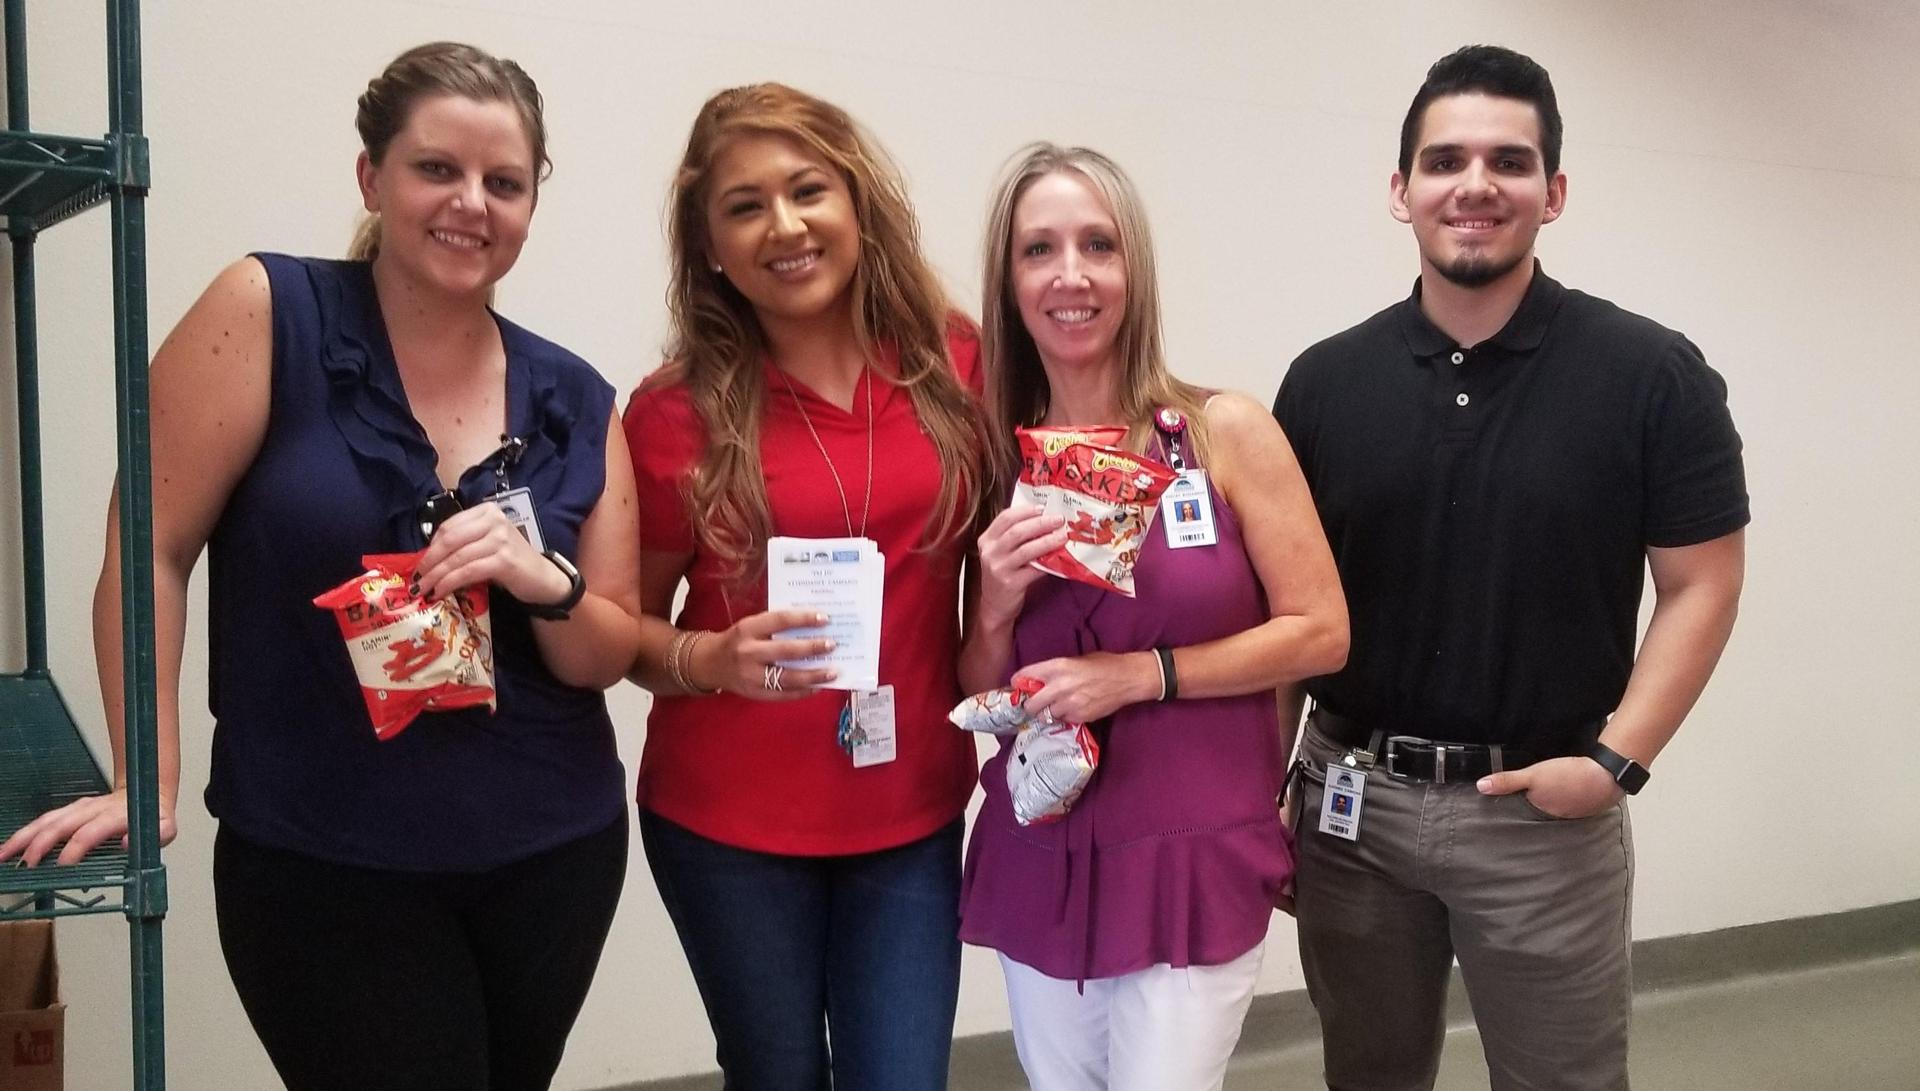 Ashley Oostdam, Acct Tech, Cinthia Chavez-Torres, Enrollment Tech, Shelly Ruzzamenti, Account Tech, and Alfonso Cardona, Account Tech. Volunteered for the 'I'm In' attendance campaign. Pictured distributing Hot Cheetos at SJHS.